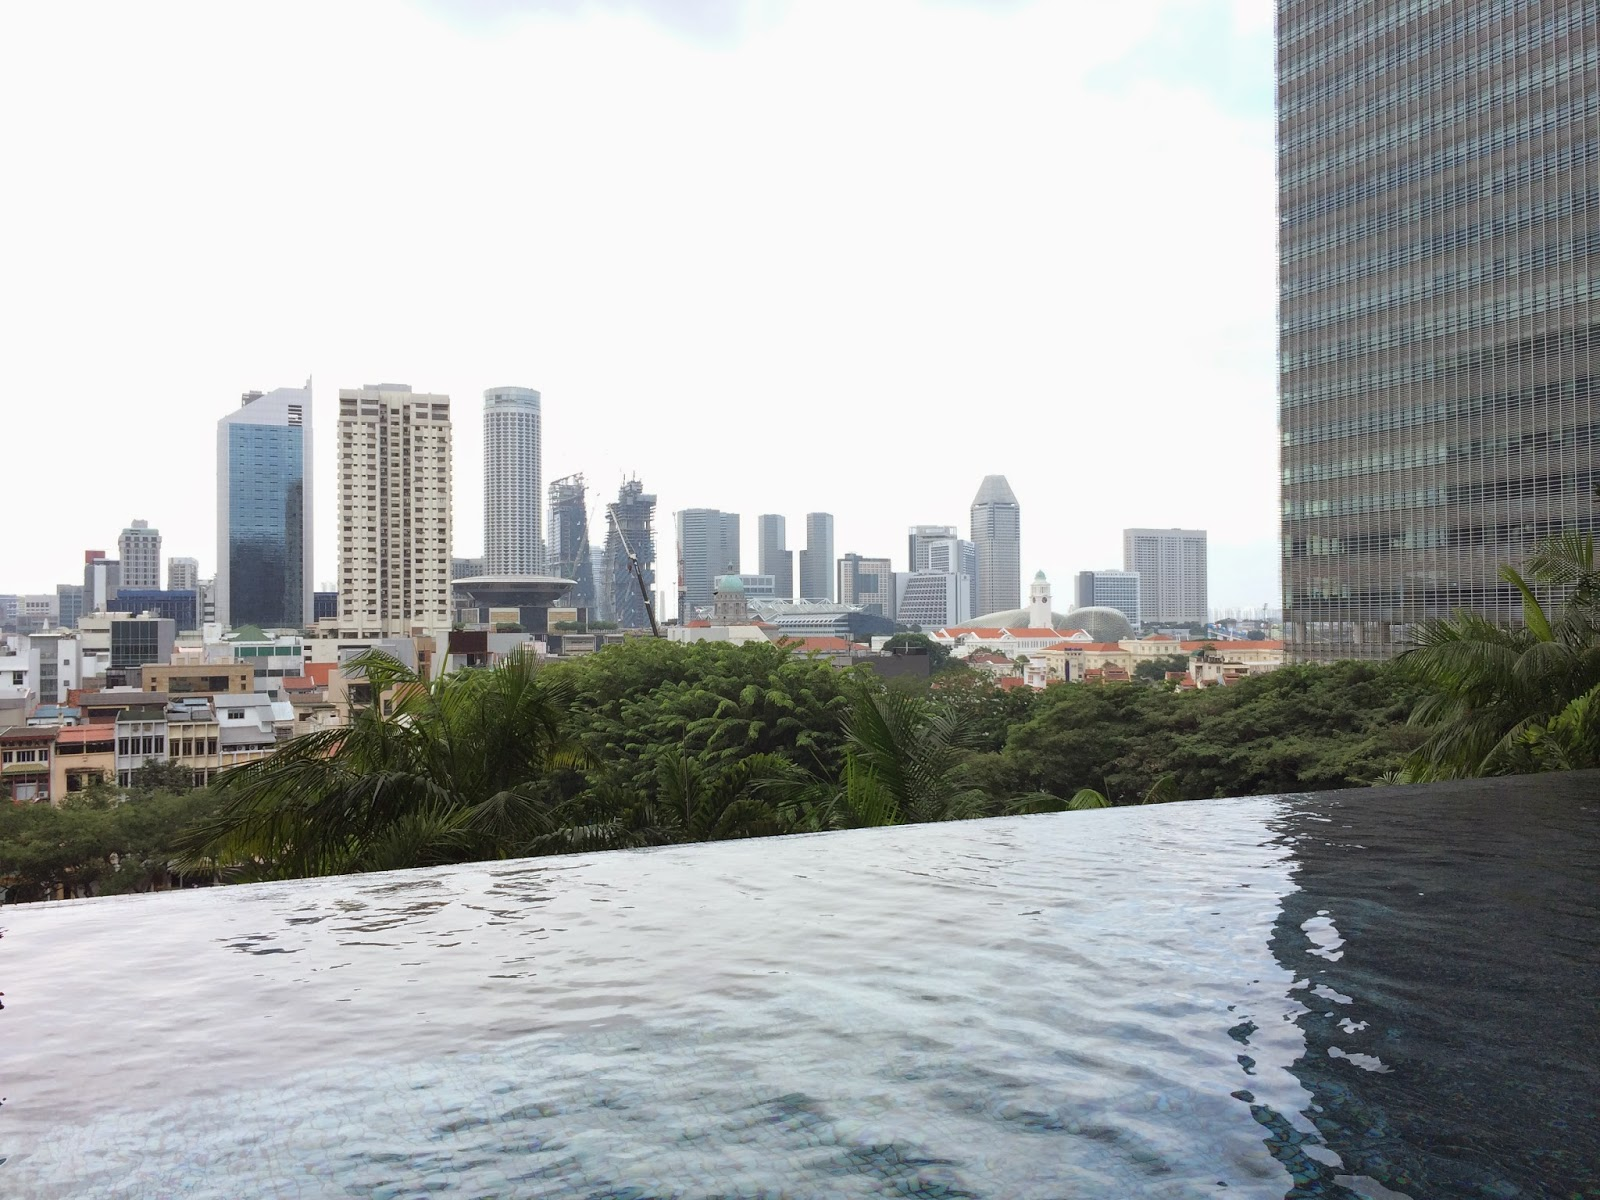 Park royal pickering orchid club deluxe room singapore travel adventure for Park royal pickering swimming pool